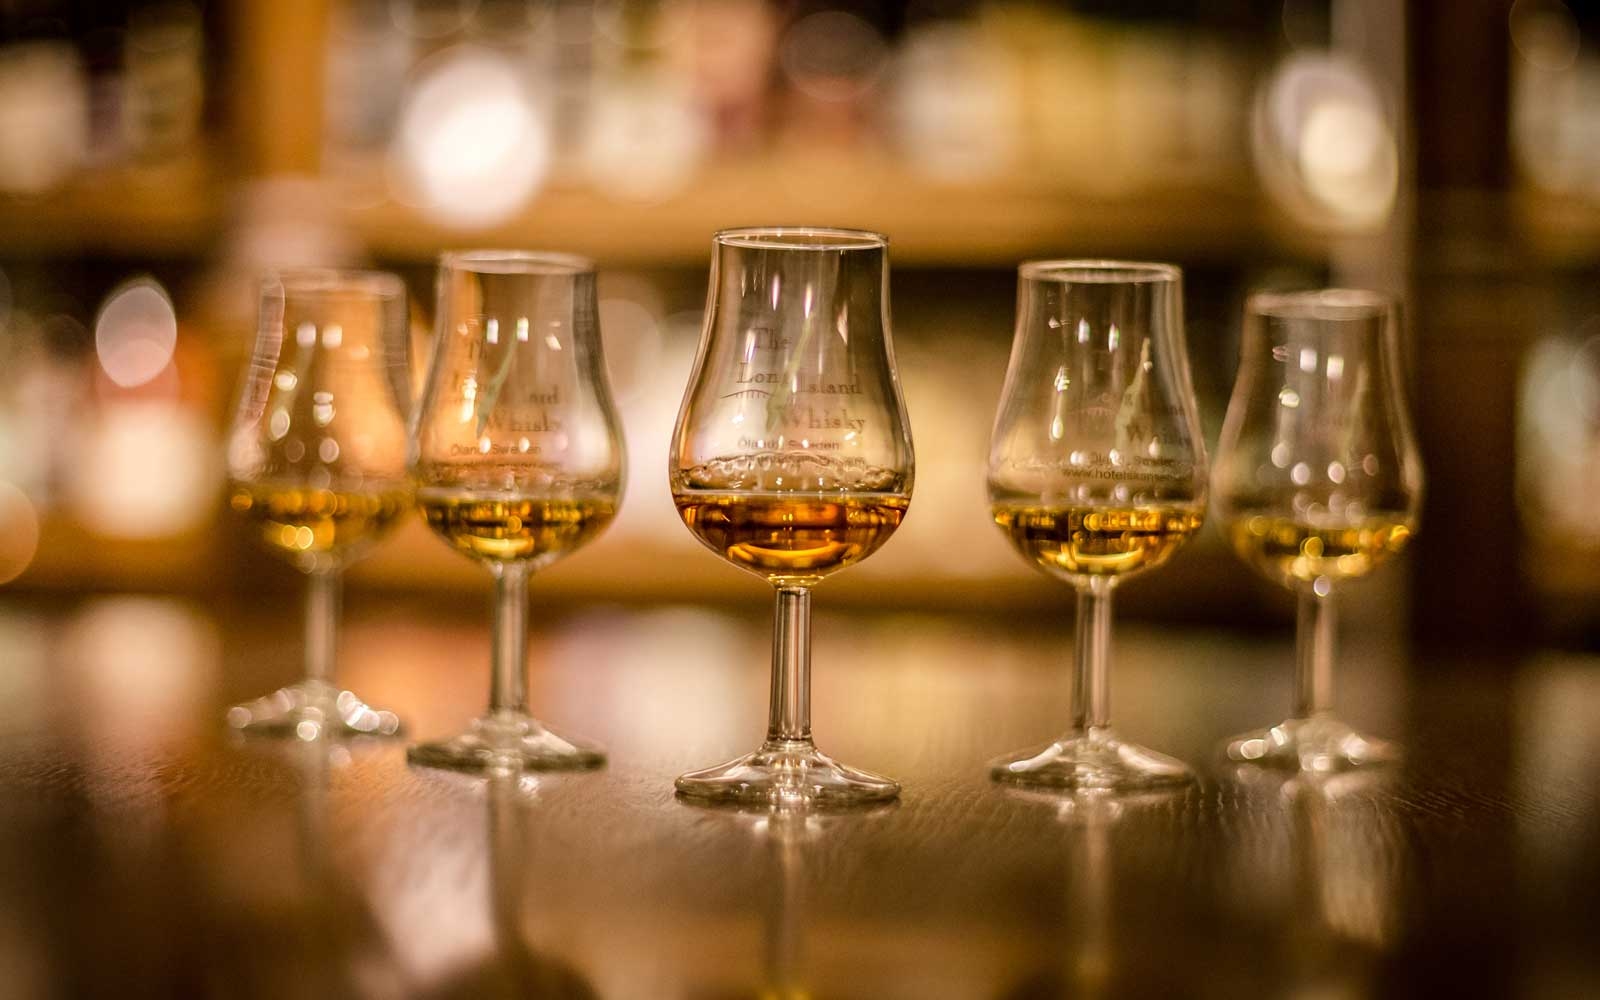 Whisky tastings can be booked as packages when staying at Sweden's Hotel Skansen.